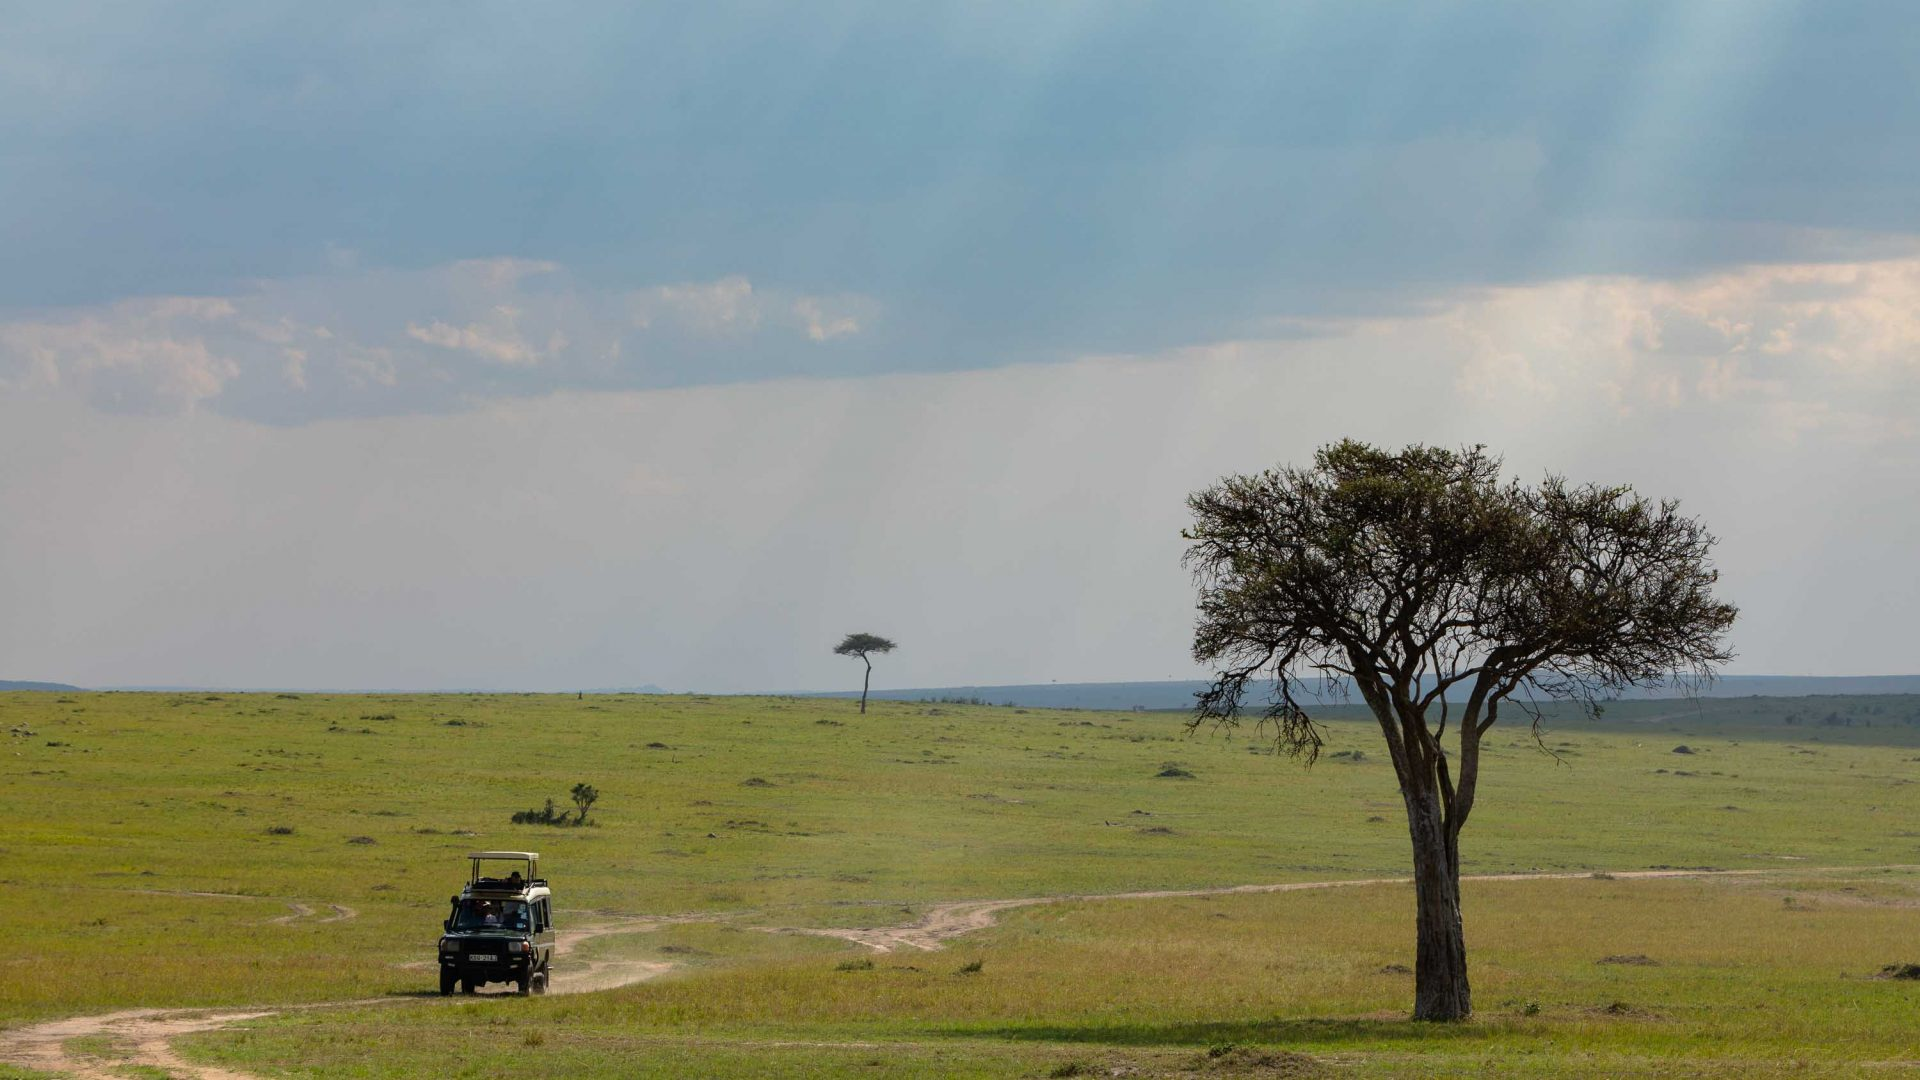 Intrepid Travel on a game drive in the Masai Mara.